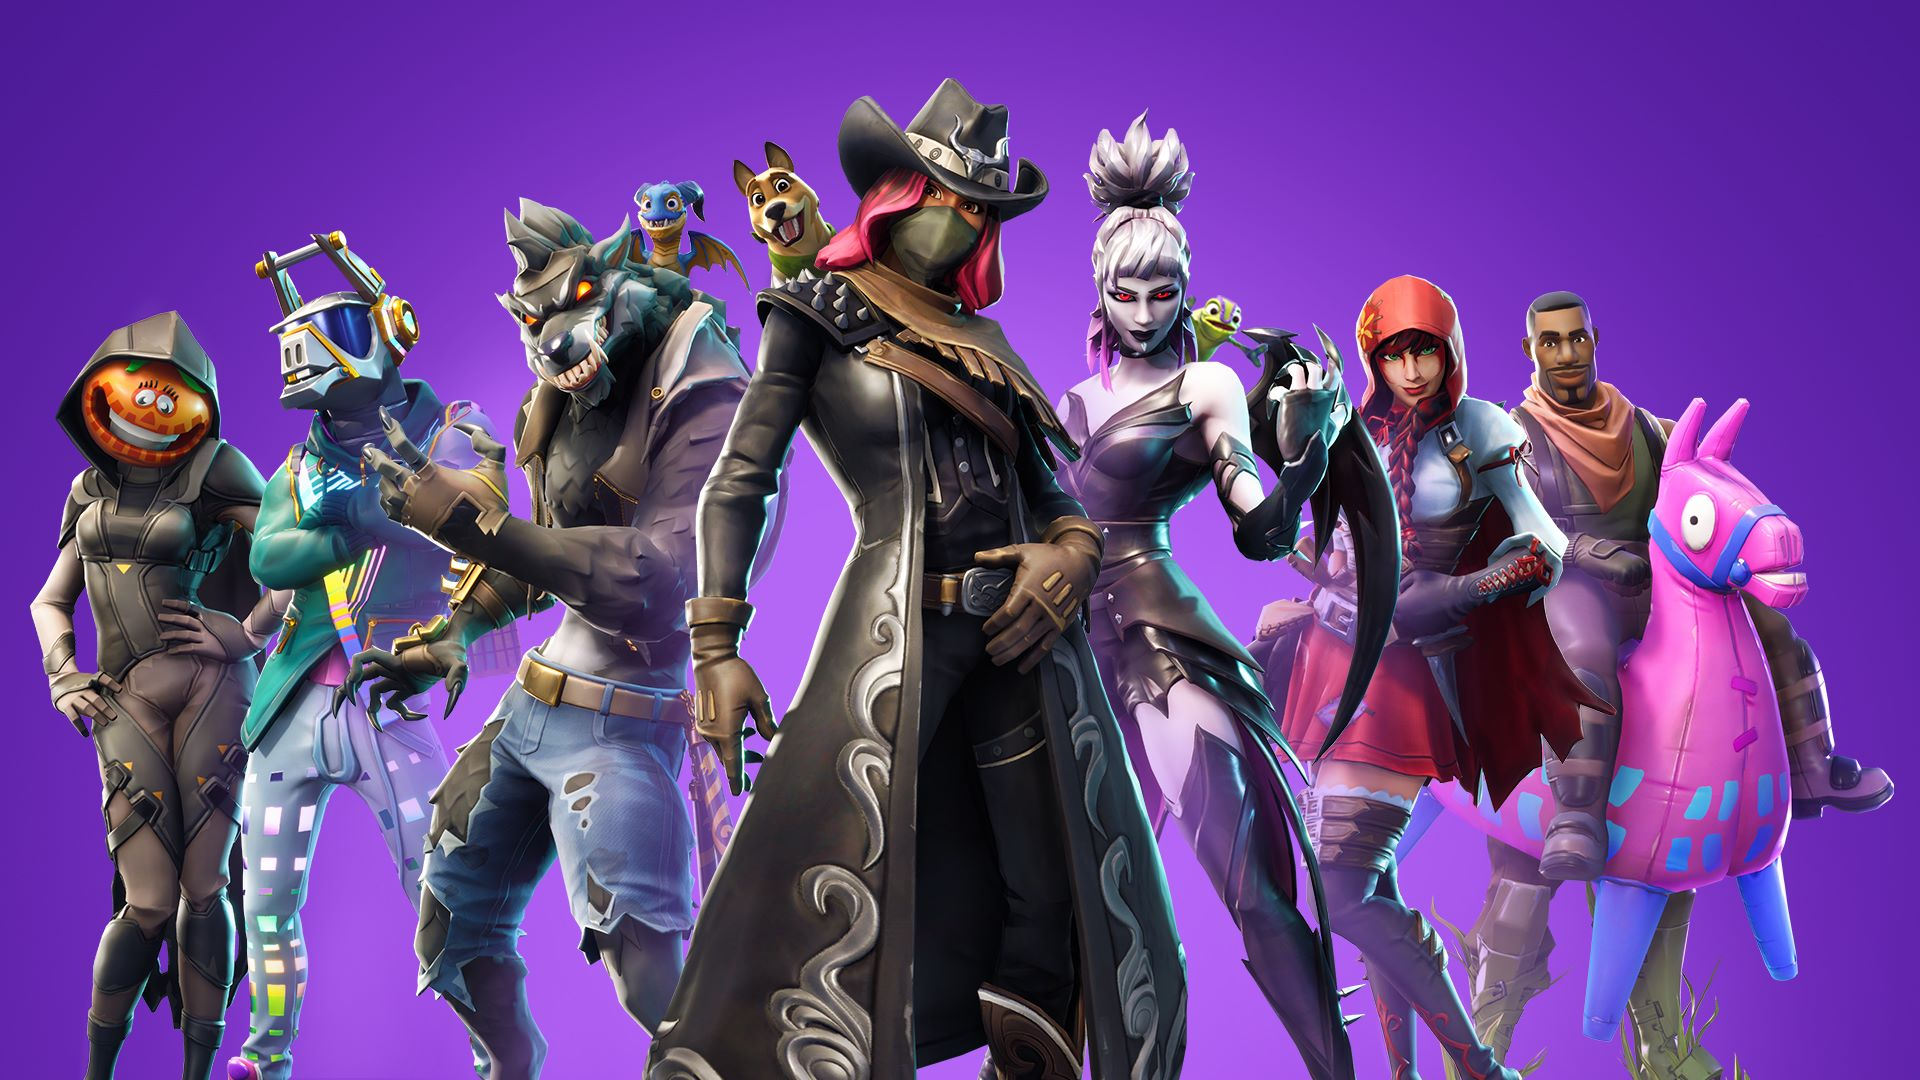 Fortnite: Save the World's State of Development: Improvements, Updates, and Delayed Free-To-Play